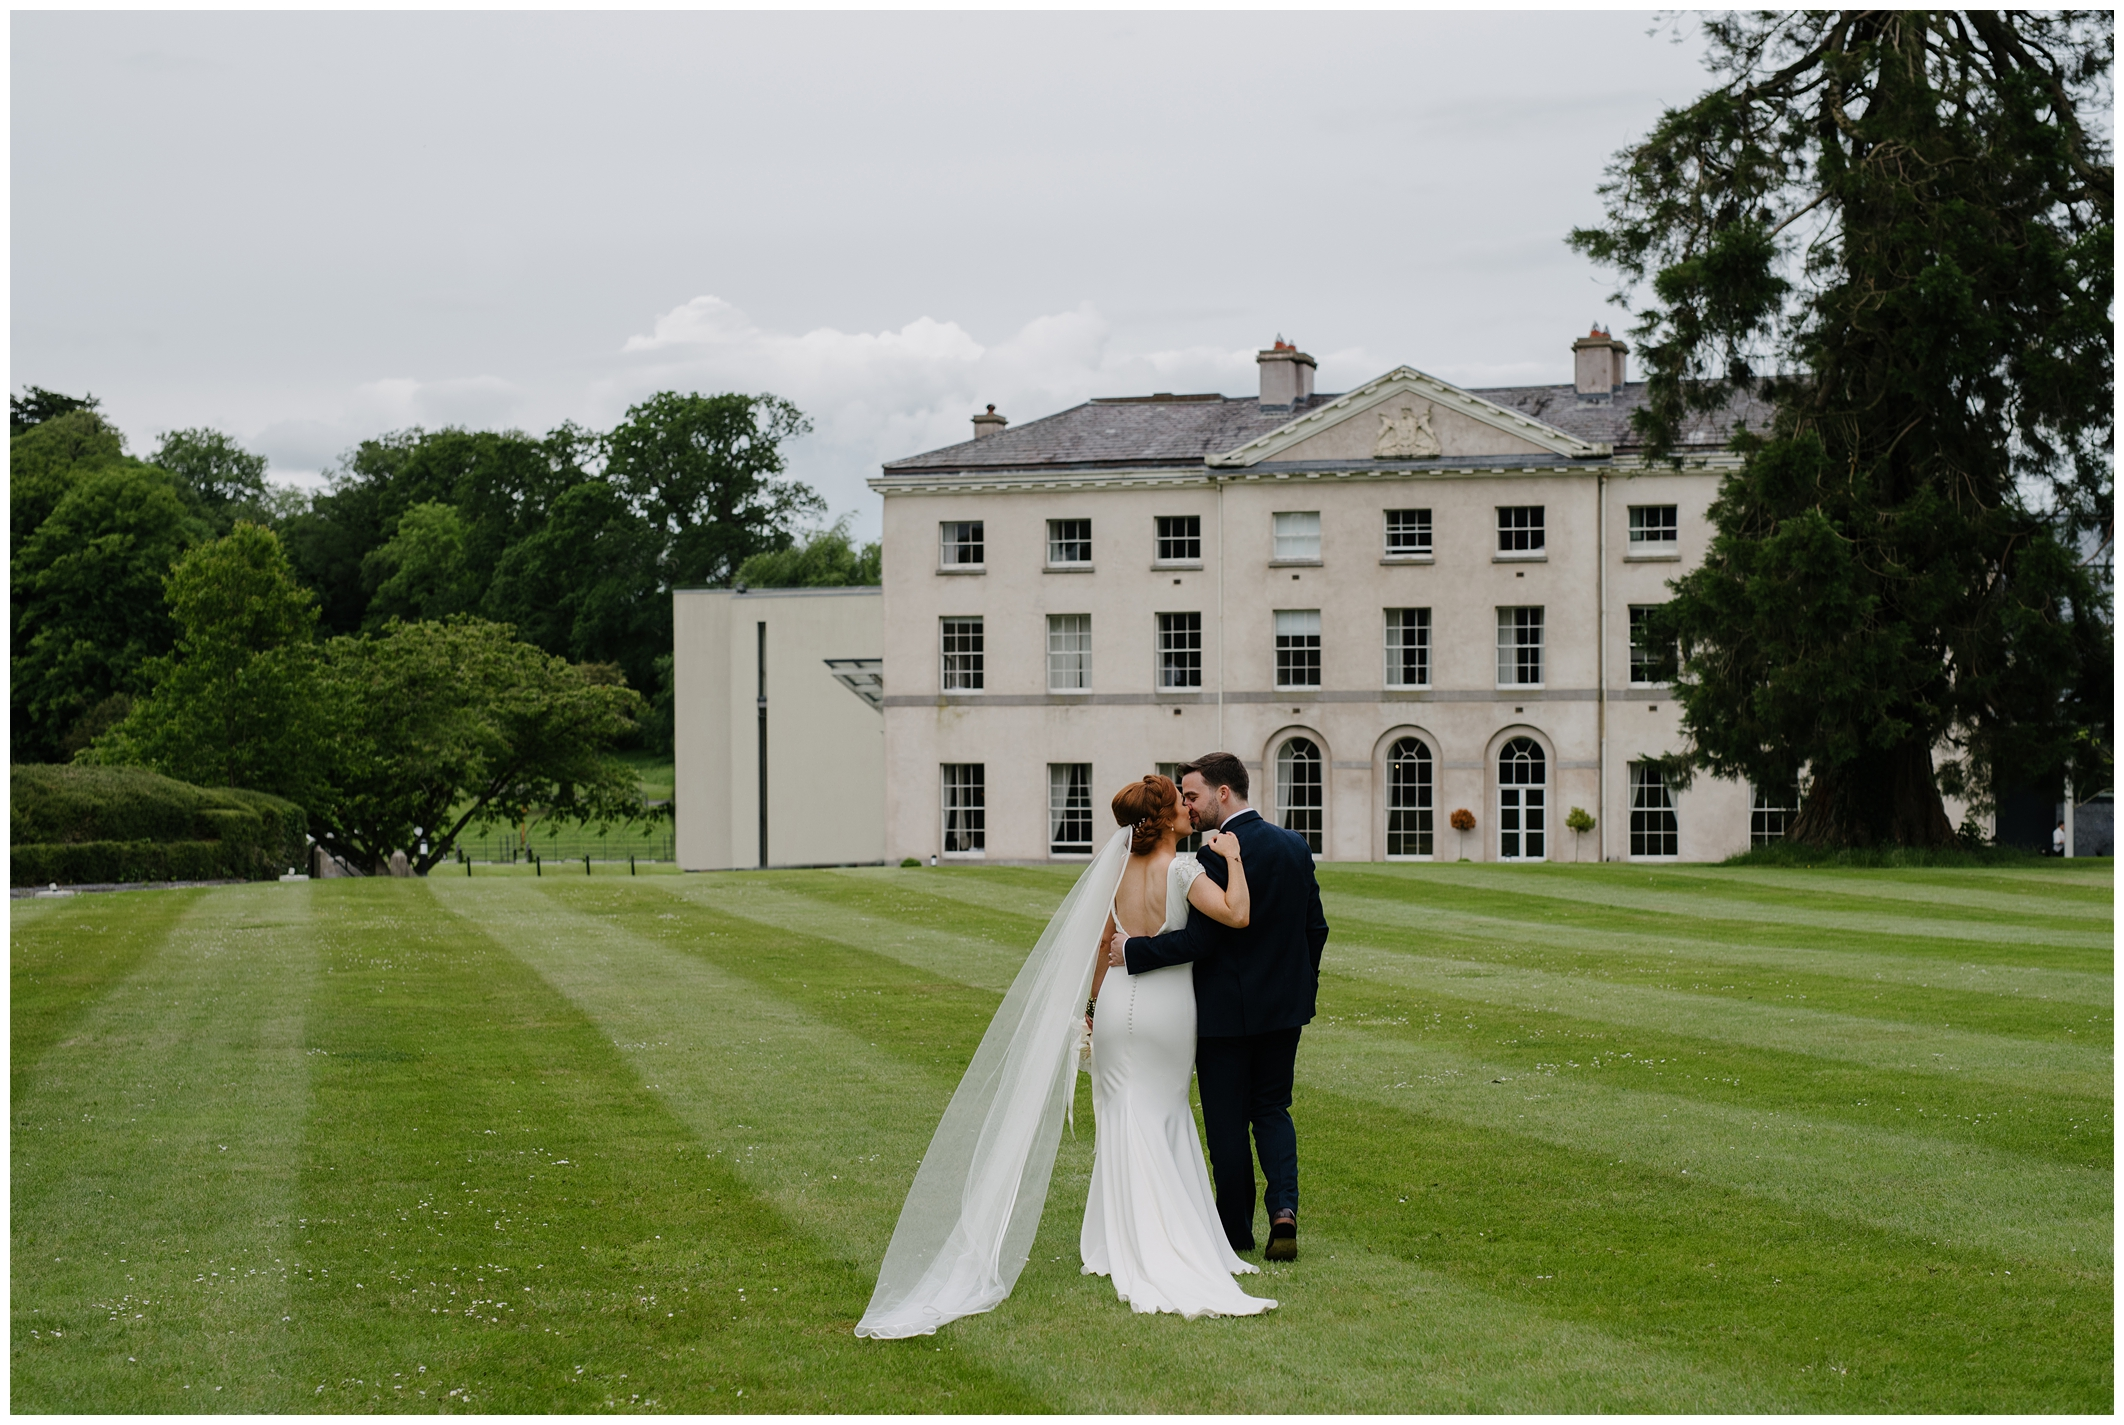 sinead_emmet_farnham_estate_wedding_jude_browne_photography_0118.jpg